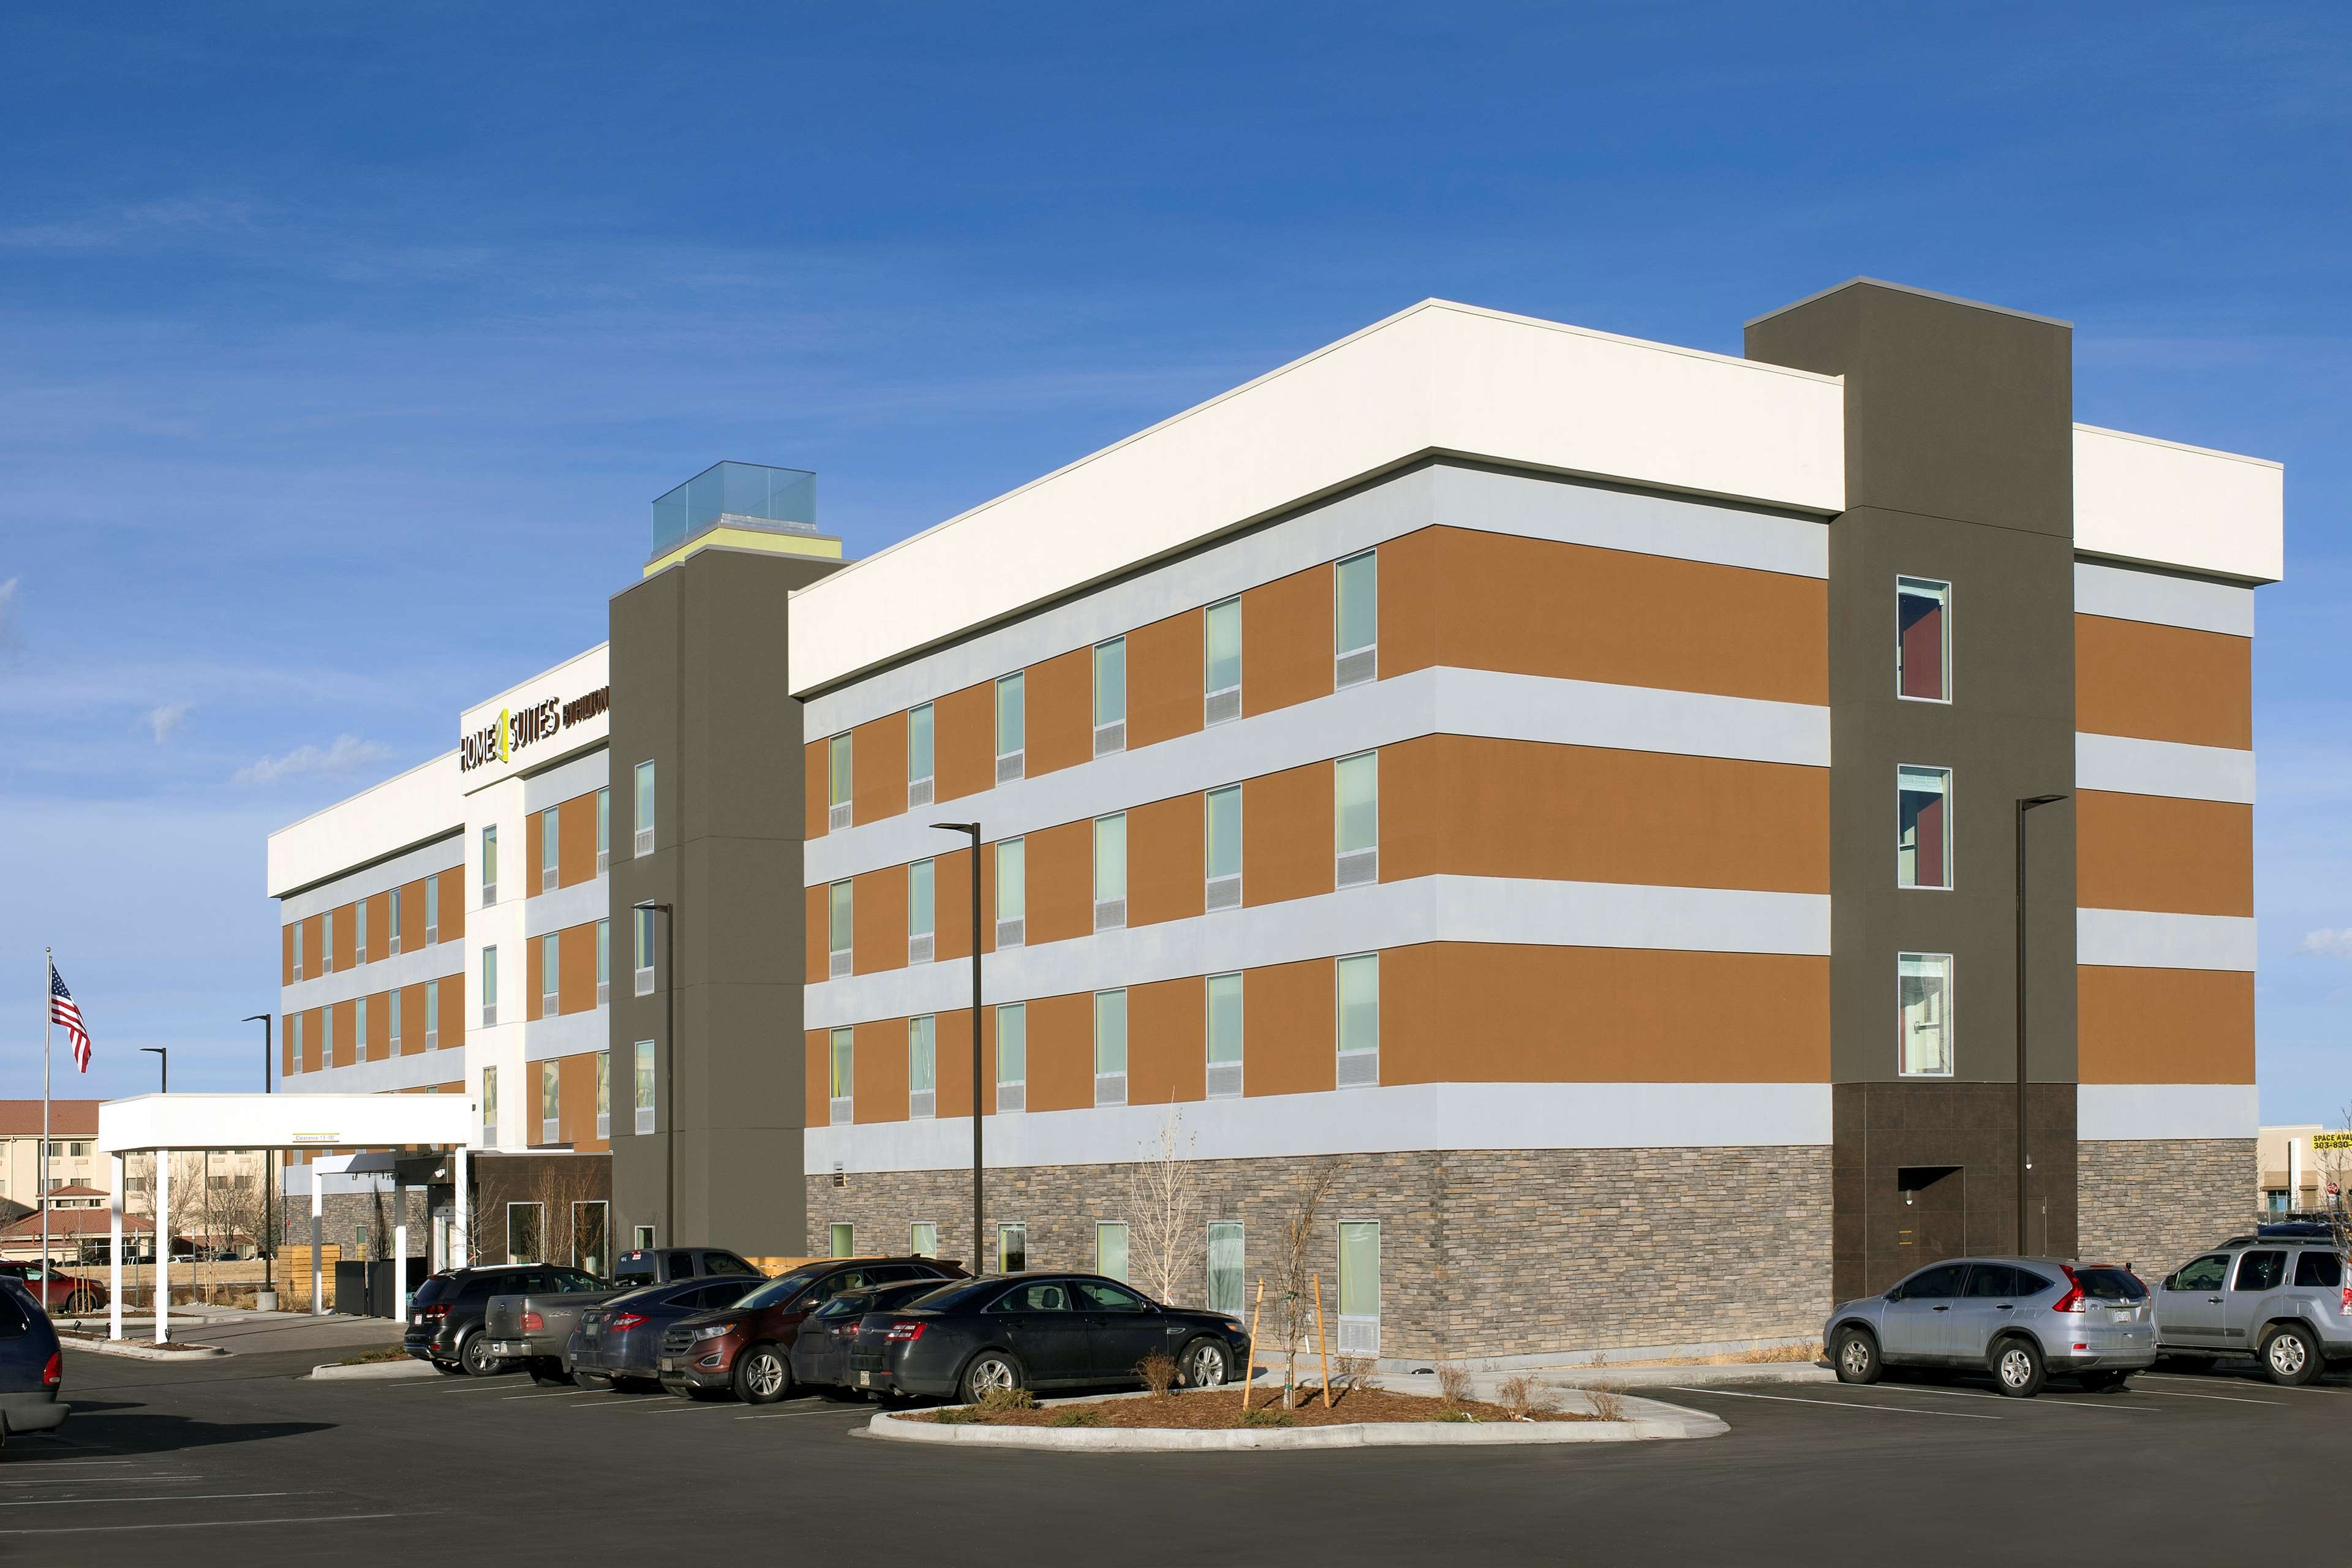 Home2 Suites by Hilton Denver International Airport image 0